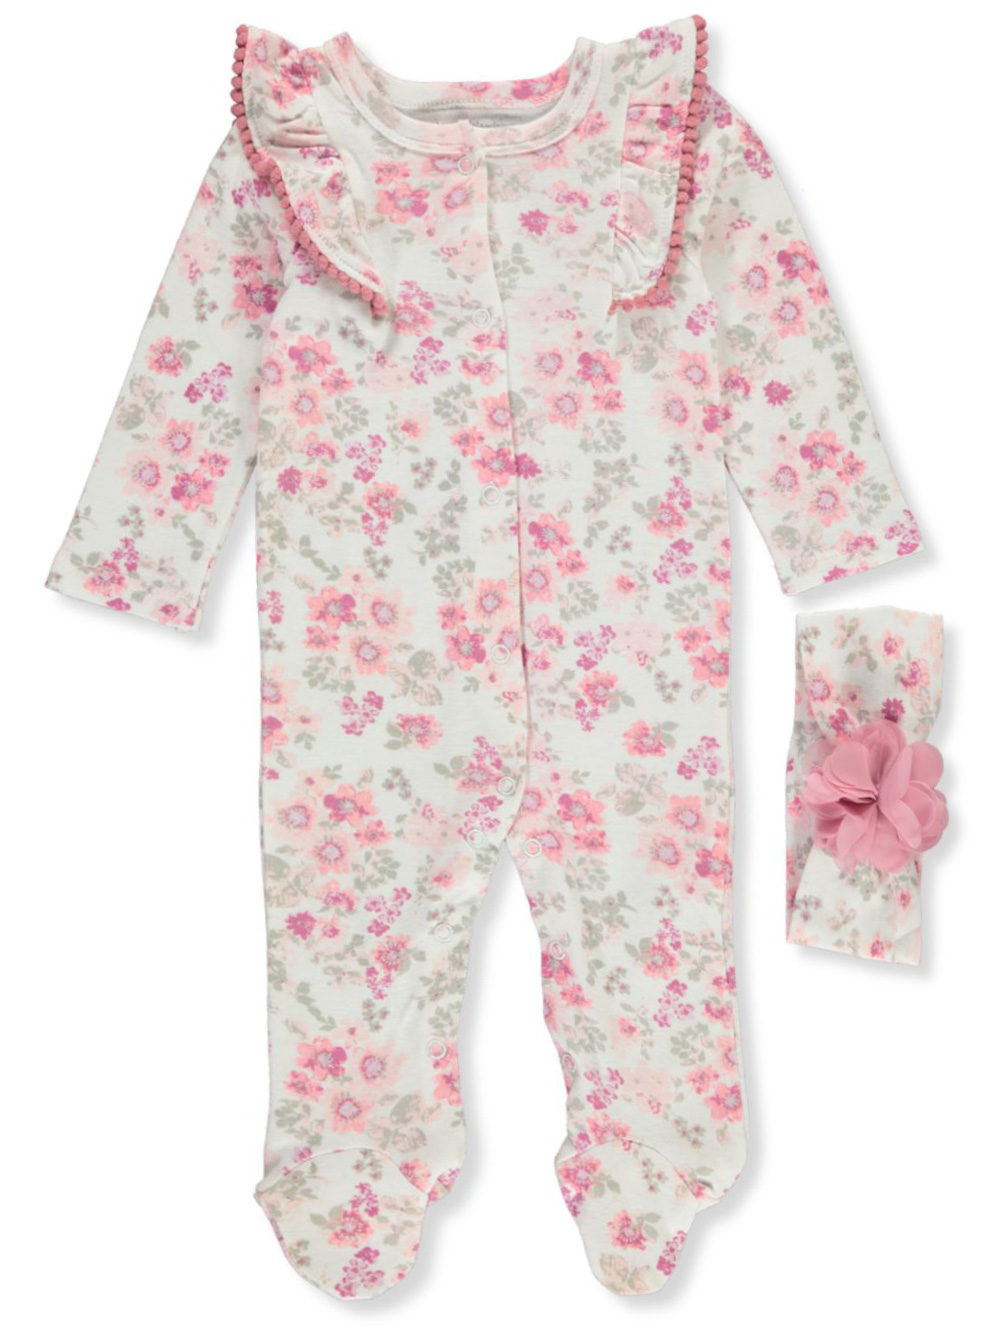 Coveralls Footed Coverall with Headband